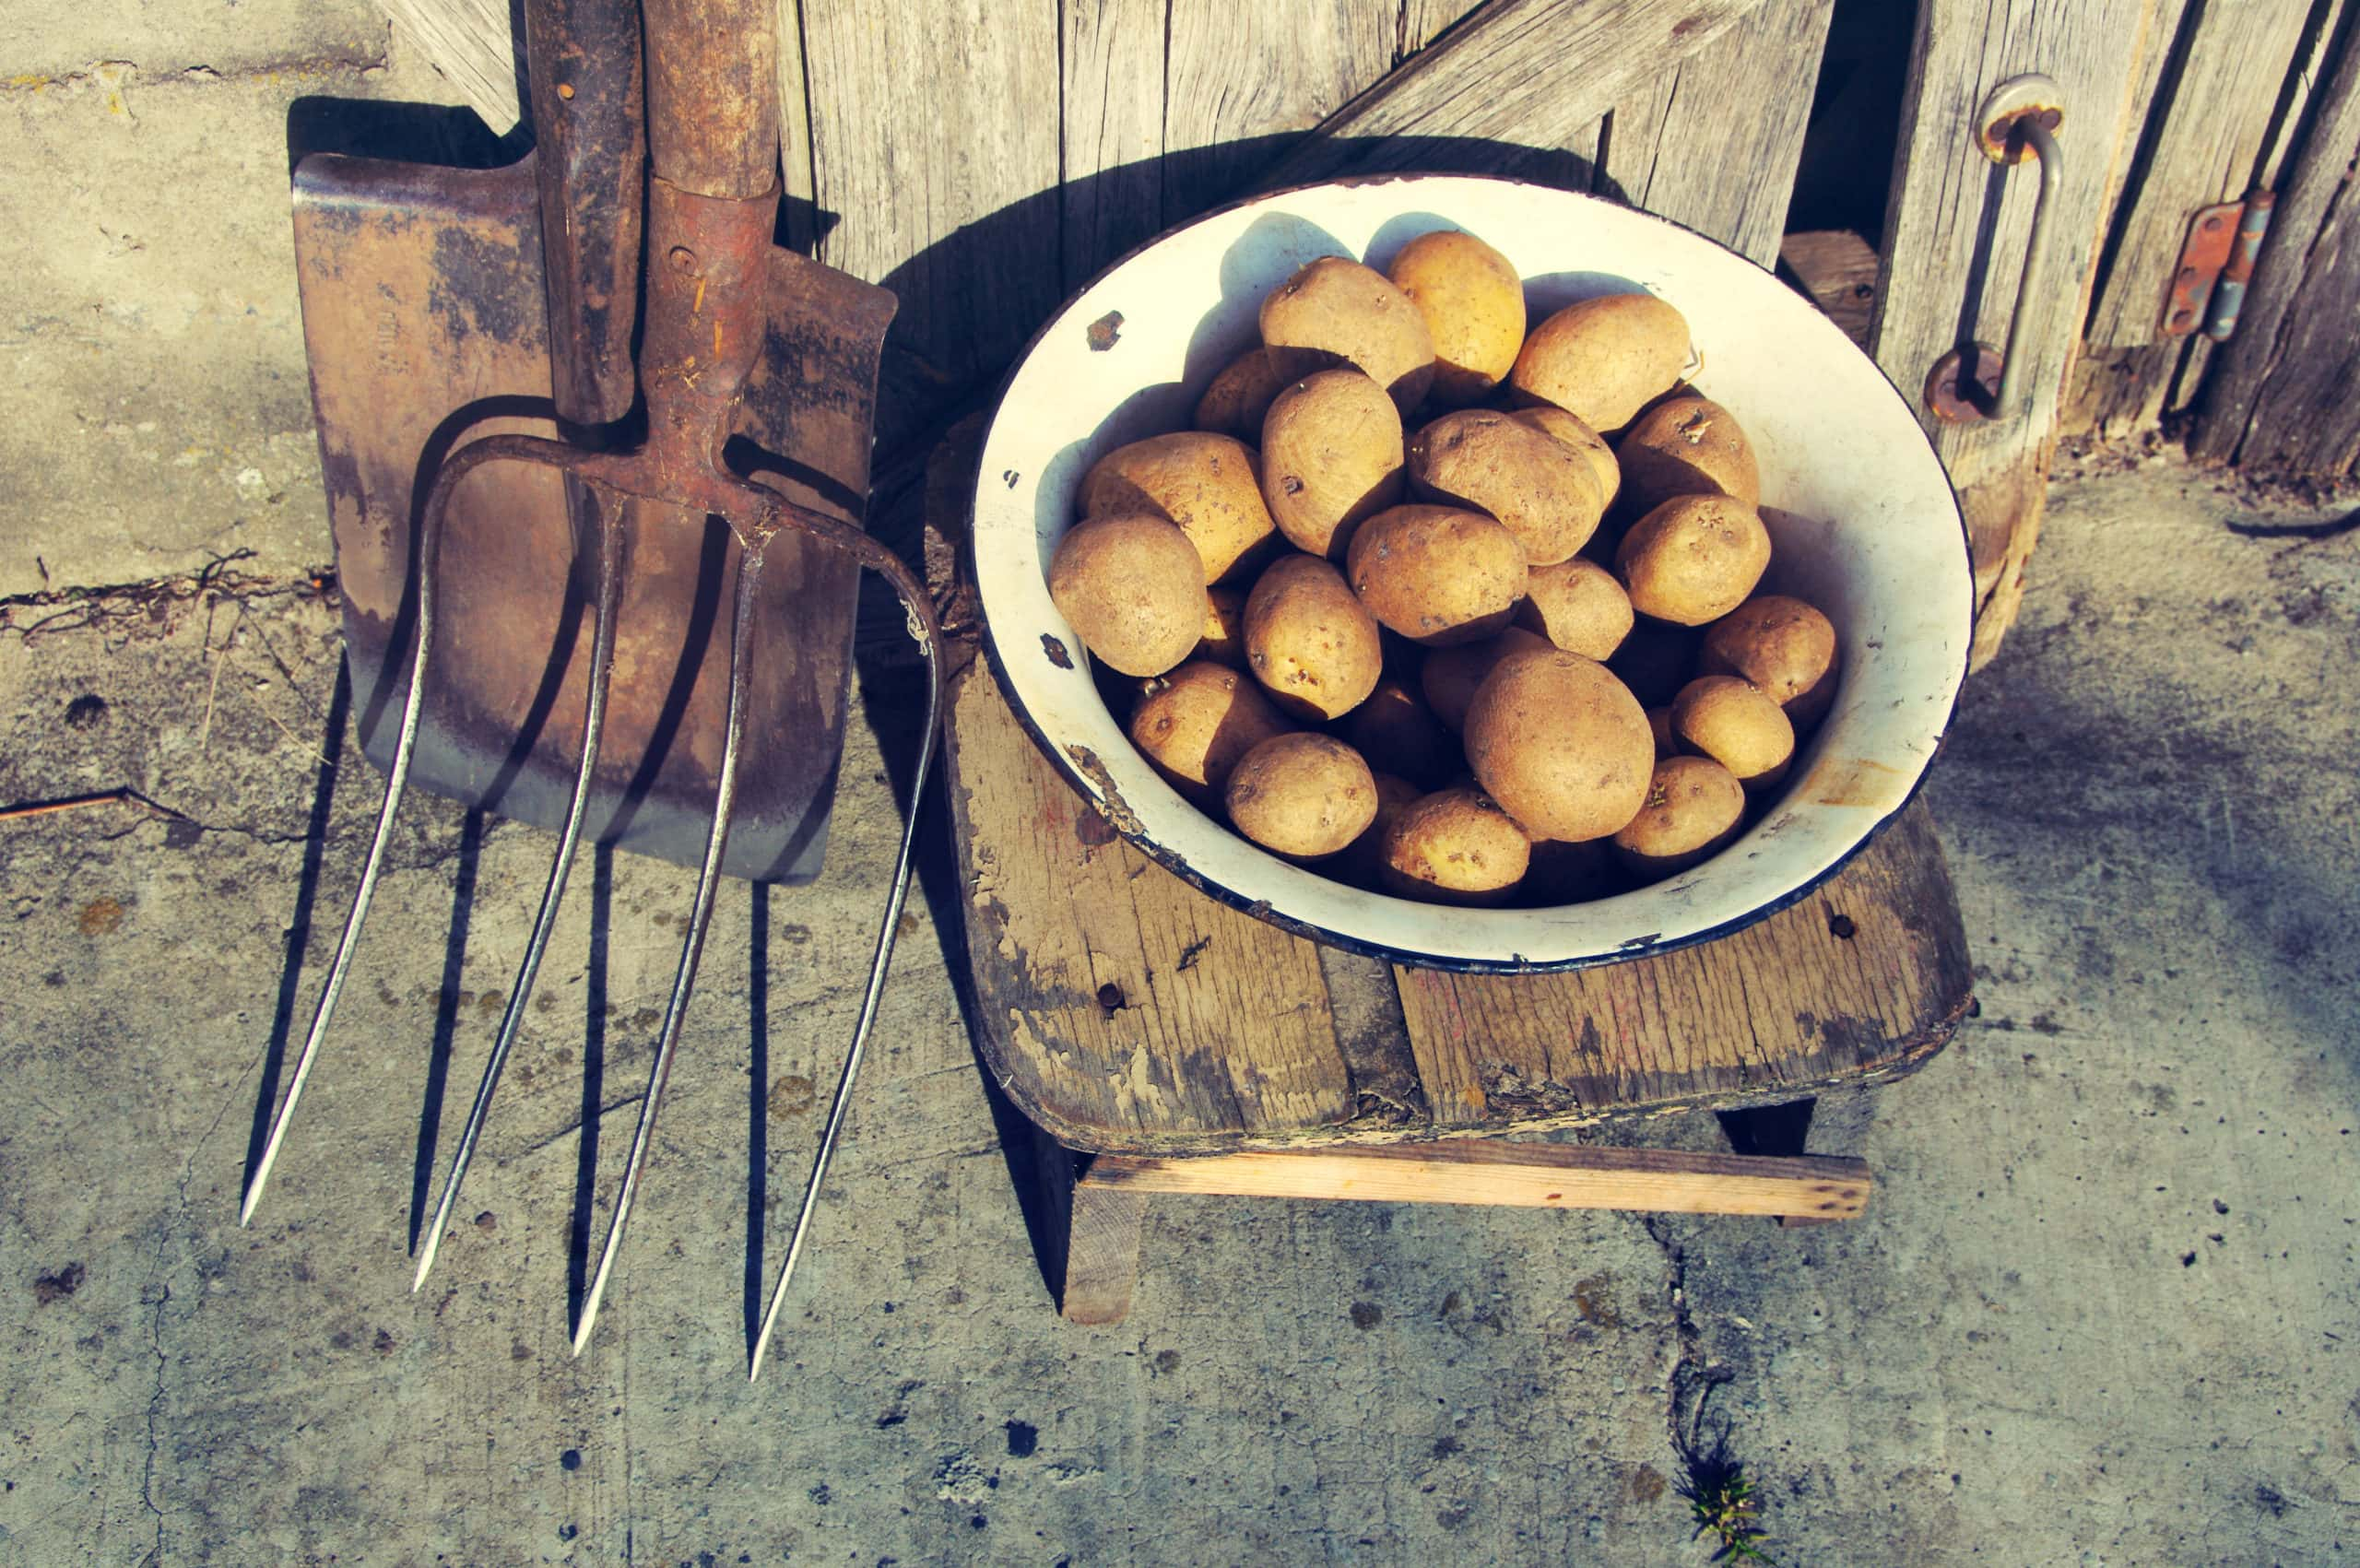 The Strange History of Potatoes And The Man Who Made Them Popularimage preview